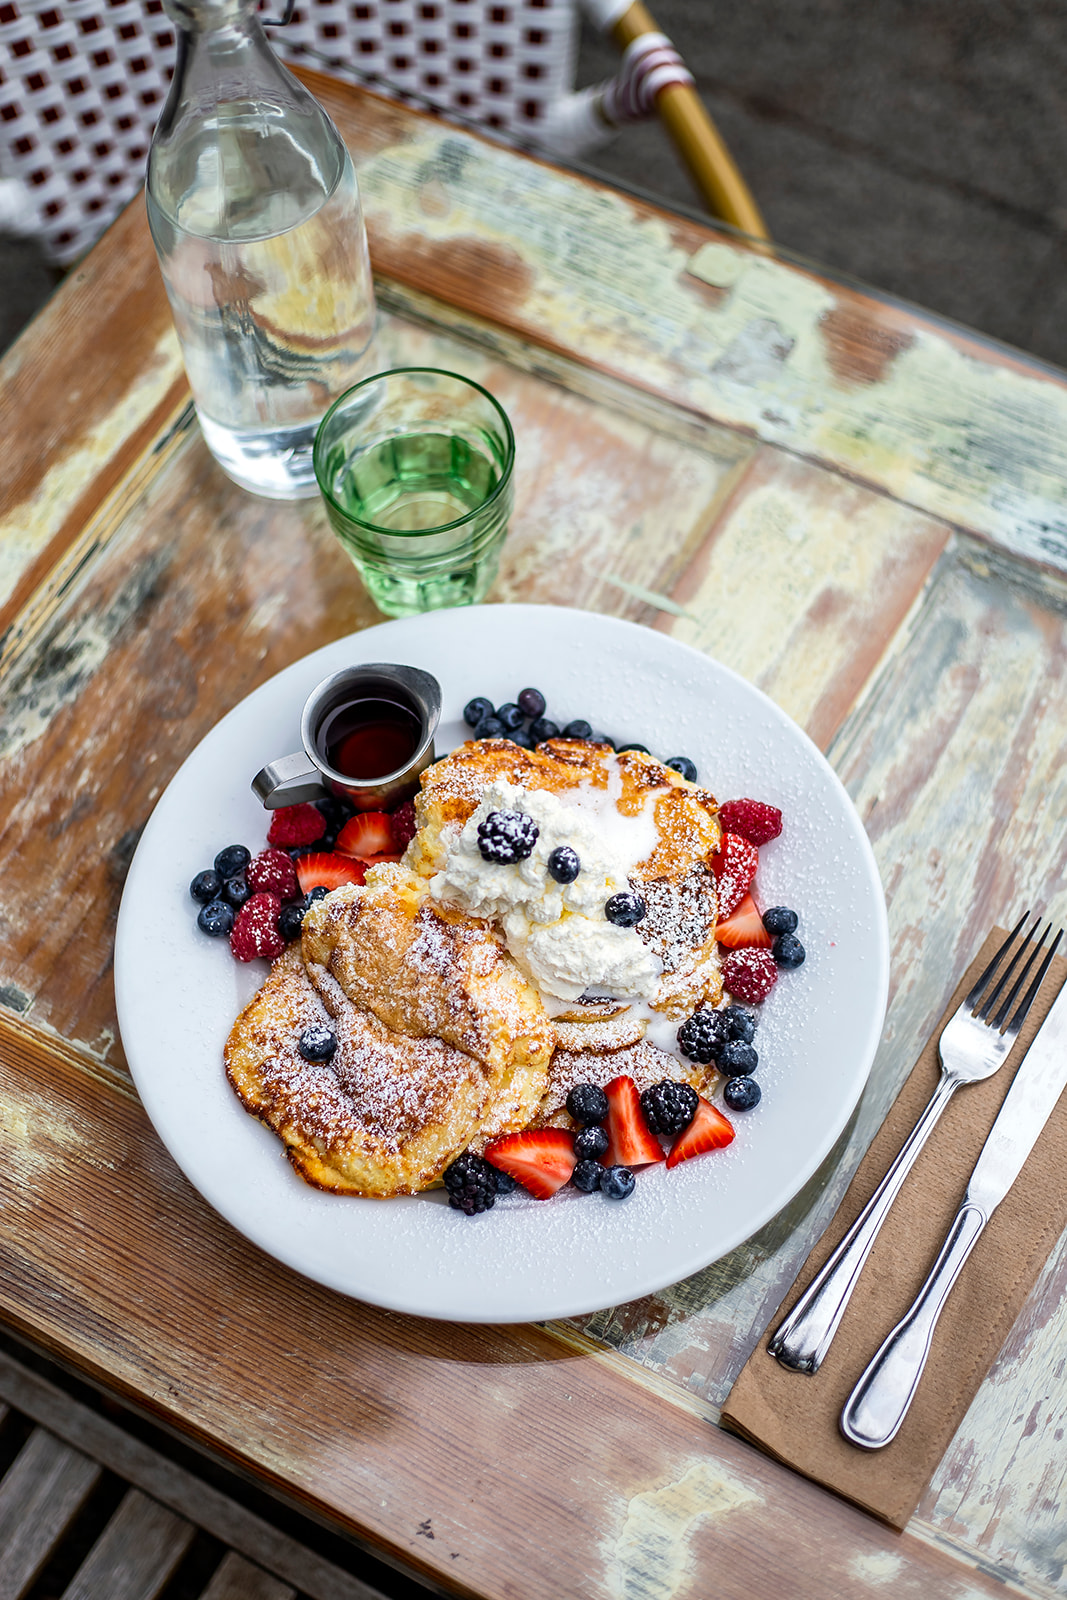 "The most popular dish on Cafe Mia's menu is the Lemon Ricotta Pancakes topped with fresh market fruit, Canadian maple syrup and house-made whipped cream with a dusting of powdered sugar. Cafe Mia features seasonal, locally-sourced and ethical cuisine - every dish is prepared in house by Mia herself. Cafe Mia is tucked away near the West Seattle Junction on SW Oregon Street. The perfect spot for brunch after hitting the farmers market on Sunday! Find them on Instagram{&nbsp;}<a  href=""https://www.instagram.com/cafe.mia/?hl=en"" target=""_blank"" title=""https://www.instagram.com/cafe.mia/?hl=en"">@cafe.mia</a>. (Image:{&nbsp;}Samantha Witt / Seattle Refined)"